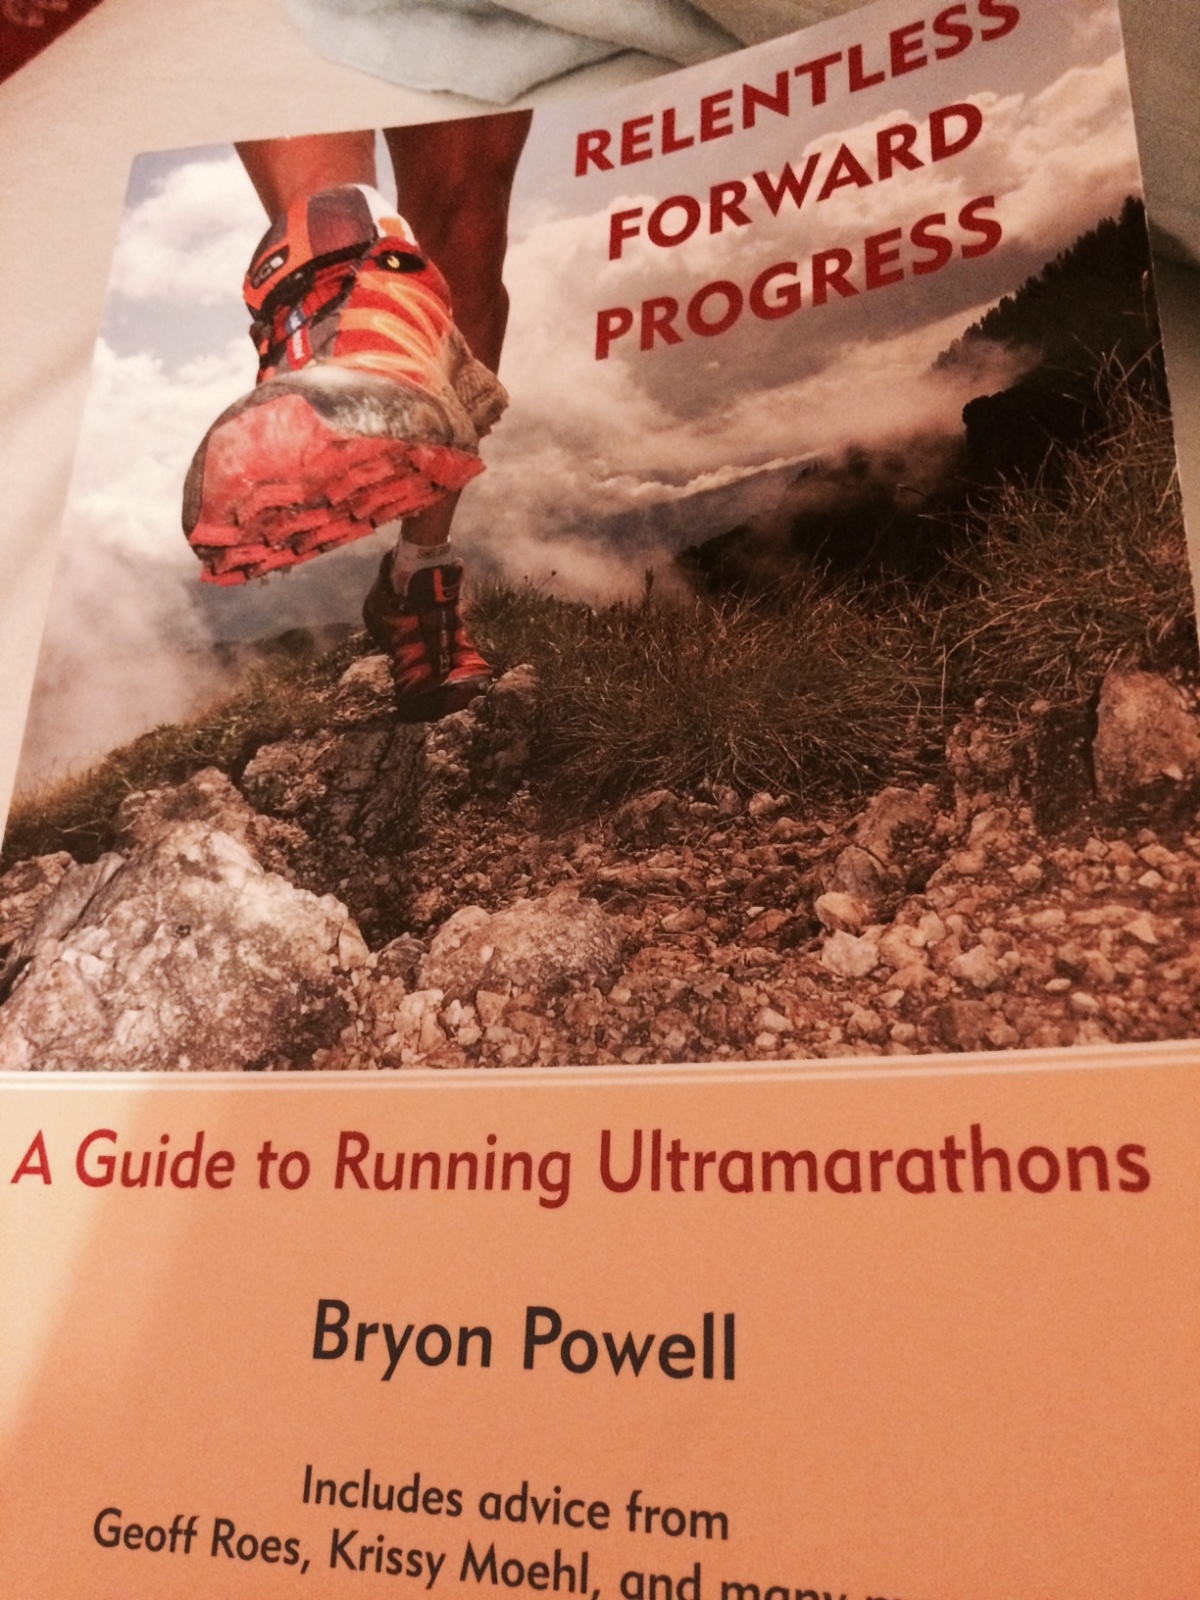 No rest for the crazy – Ultramarathons and Training Recap